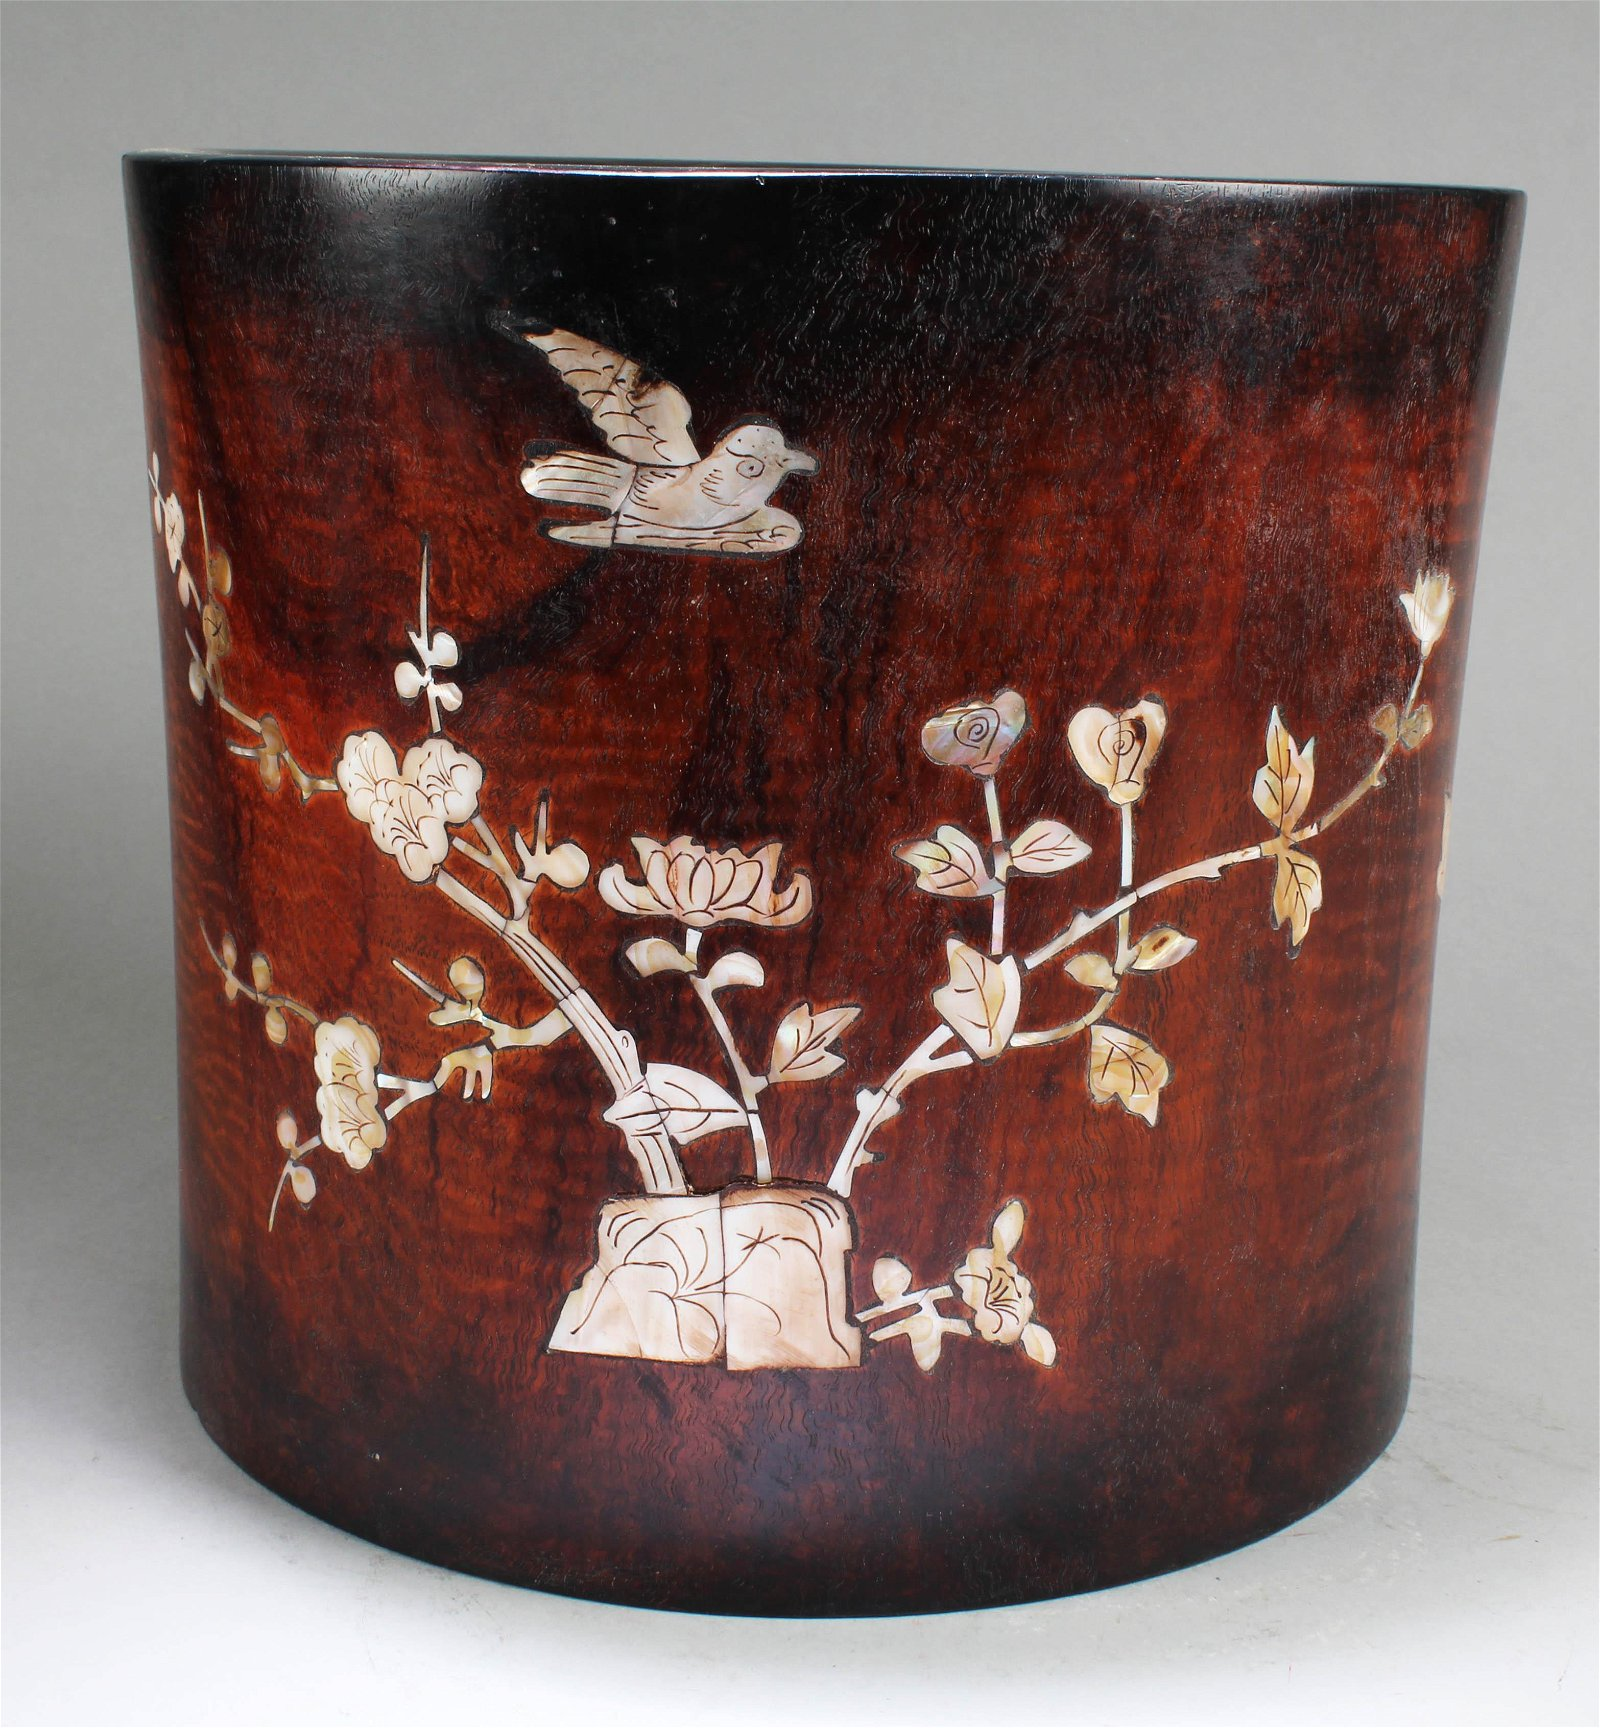 A Large Chinese Wooden Brushpot with Mother Pearl Inlay